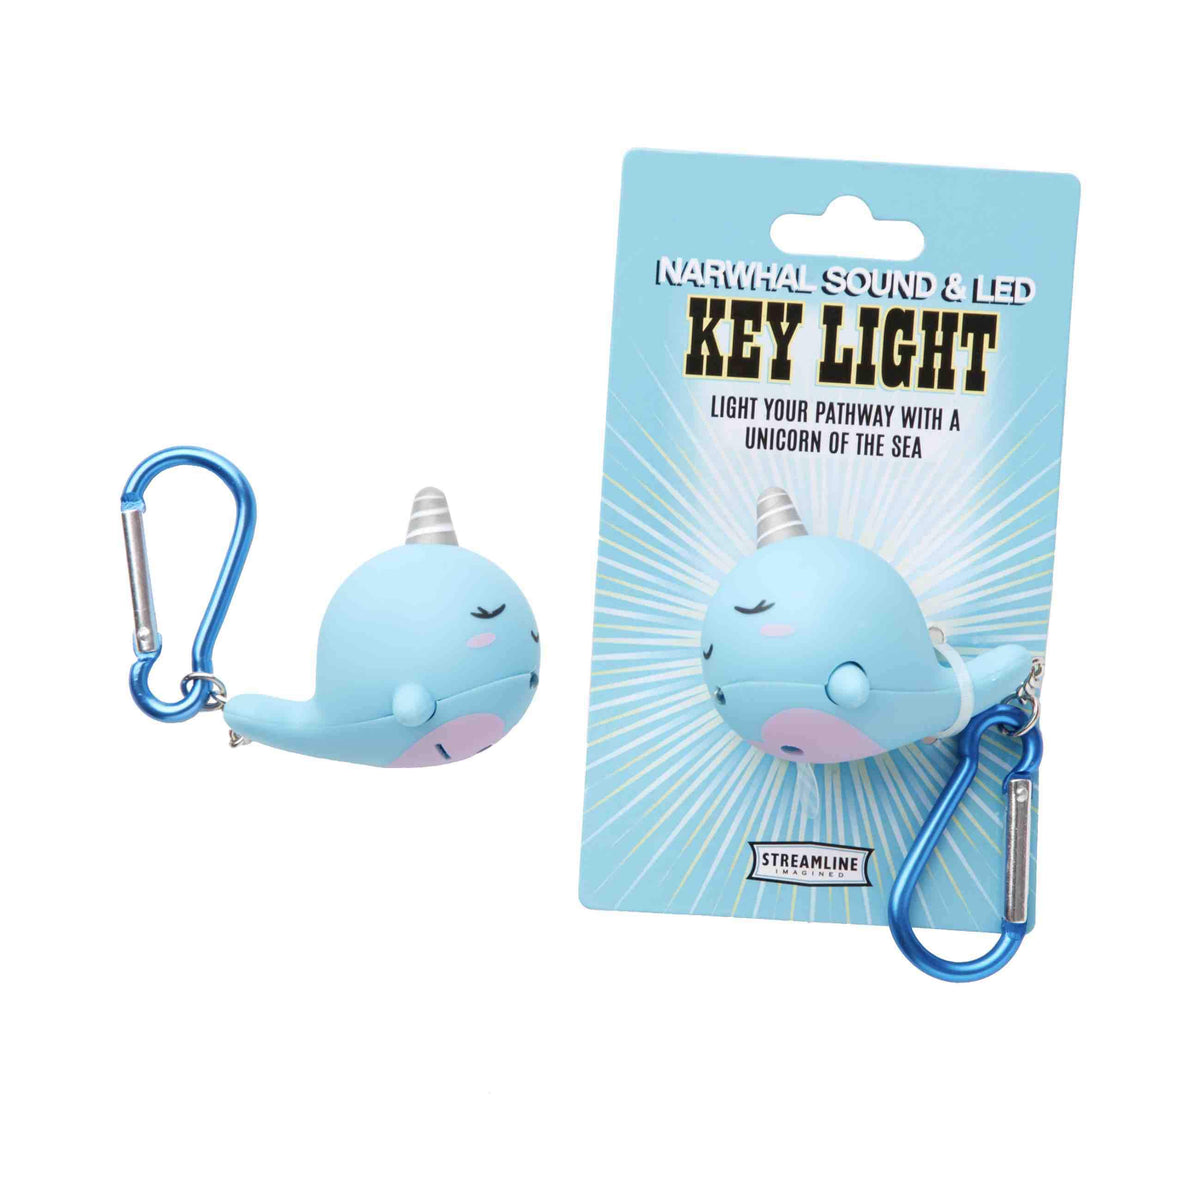 Narwhal Sound LED Key Light